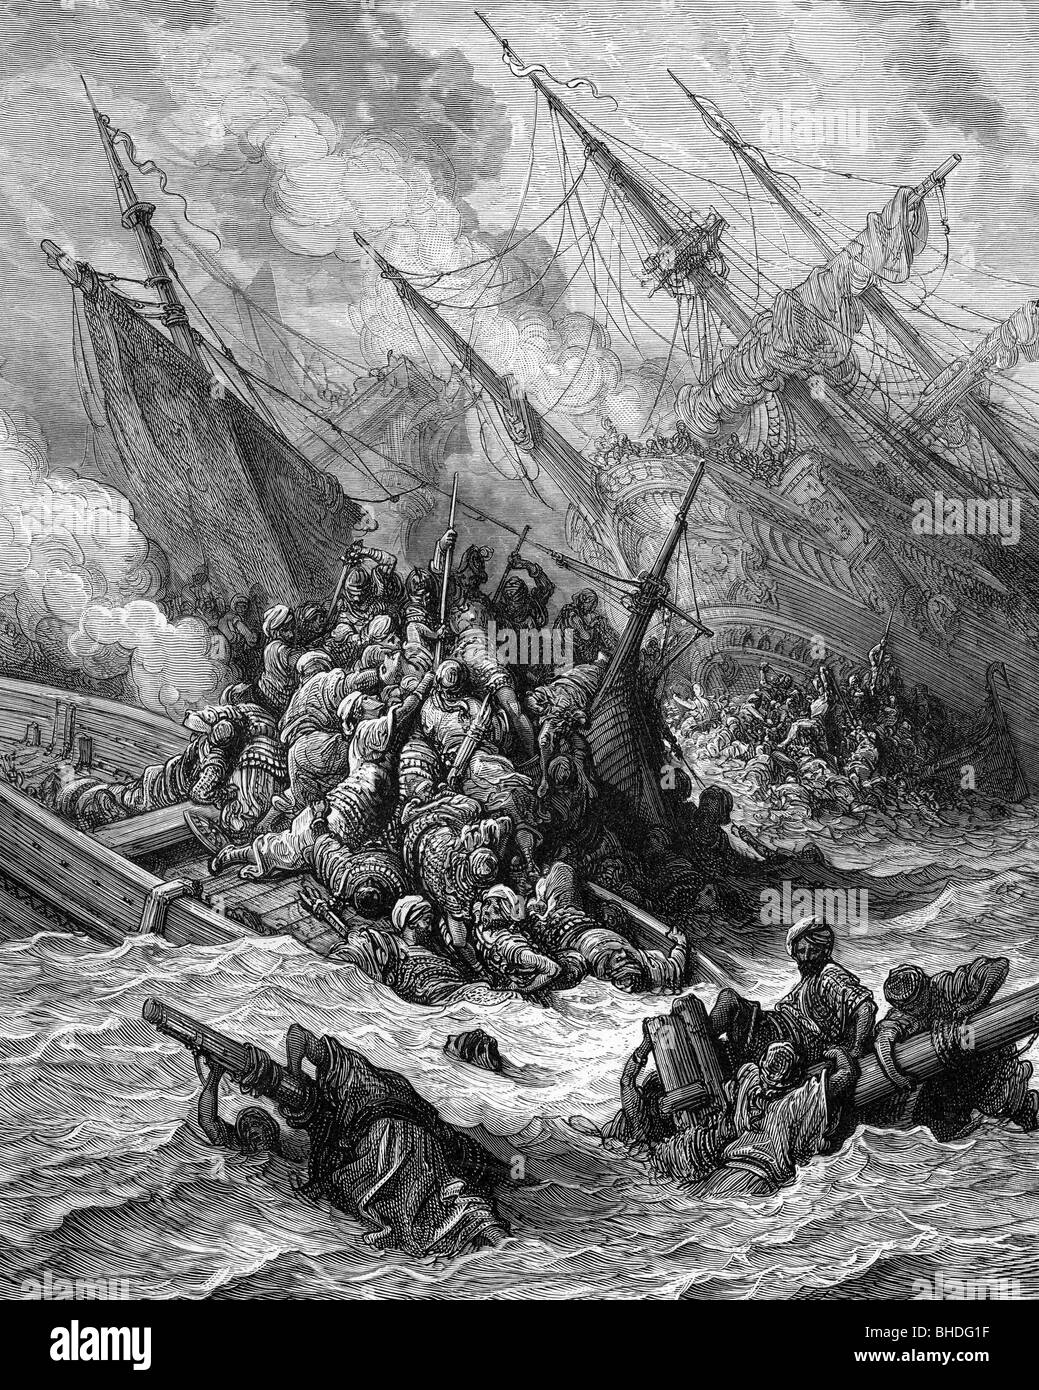 Fifth Venetian Turkish War 1570 - 1573, Battle of Lepanto, 7.10.1571, between of the naval forces of the Holy League under Don Juan de Austria and the Ottoman Empire under Ali Pasha, scene, lithograph by Gustav Doré, 1877, Greece, Nafpaktos, Naupactus, Gulf of Patras, navigation, fleet, fleets, navy, naval war, naval wars, armed forces, naval forces, 16th century, sixteenth century, the 1500s, graphic, graphics, decay, republic Venice, Kingdom of Spain, Papal States, Ottomans, Turks, Great Turkish War, Ottoman Wars, shipwrecks, abandoned shipwreck, fig, Artist's Copyright has not to be cleared Stock Photo